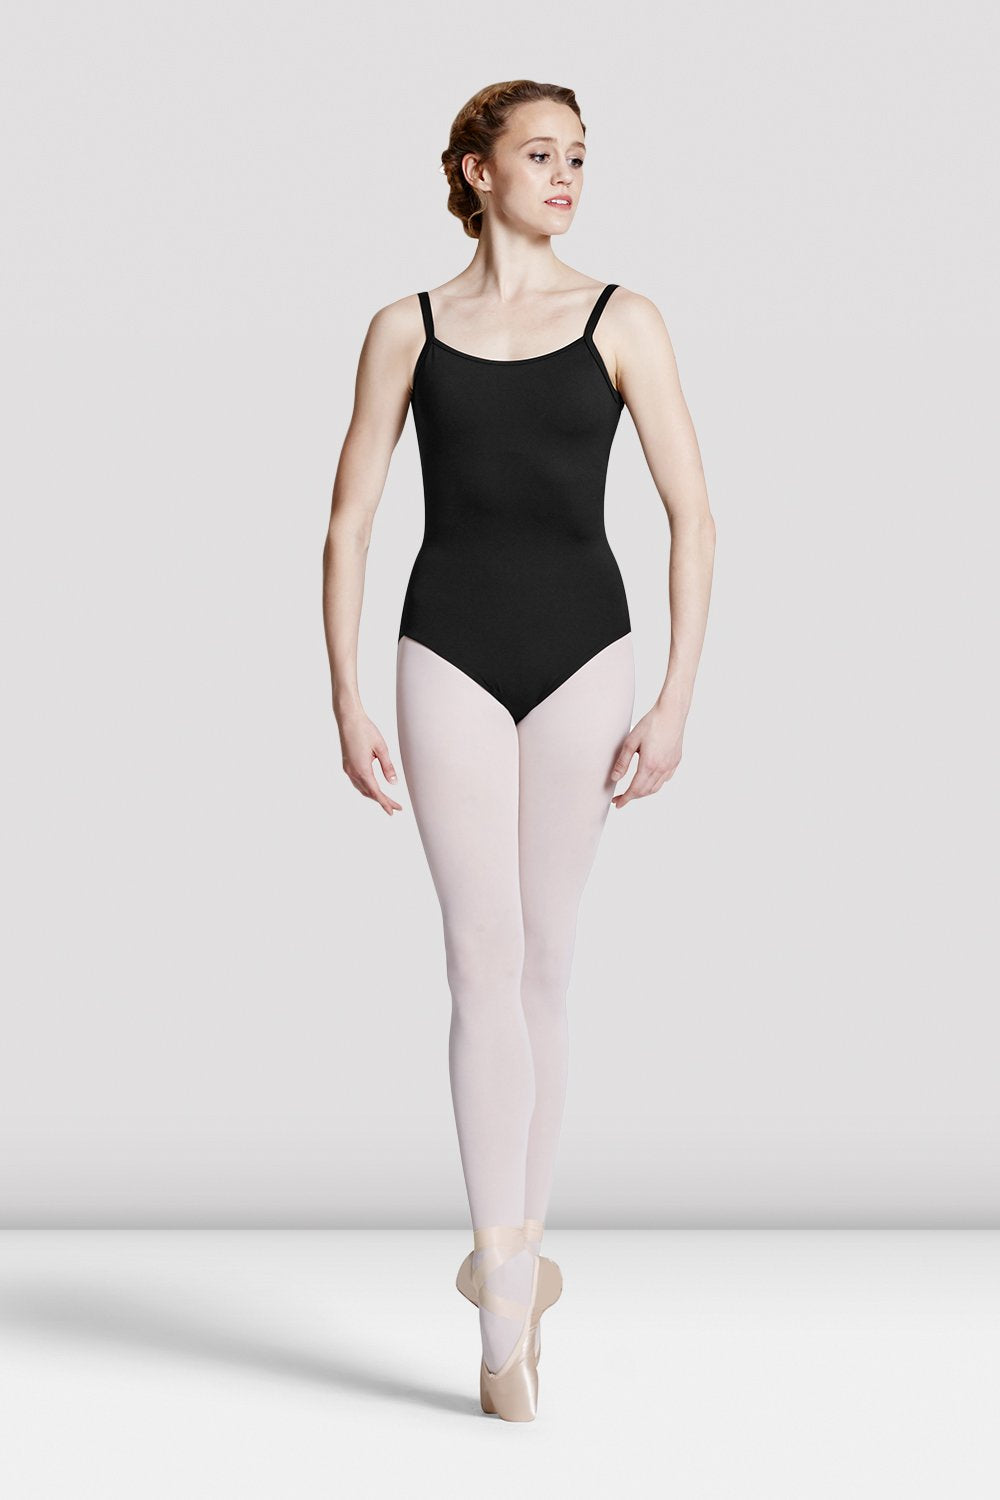 Ladies Allnatt Cross Back Leotard - BLOCH US